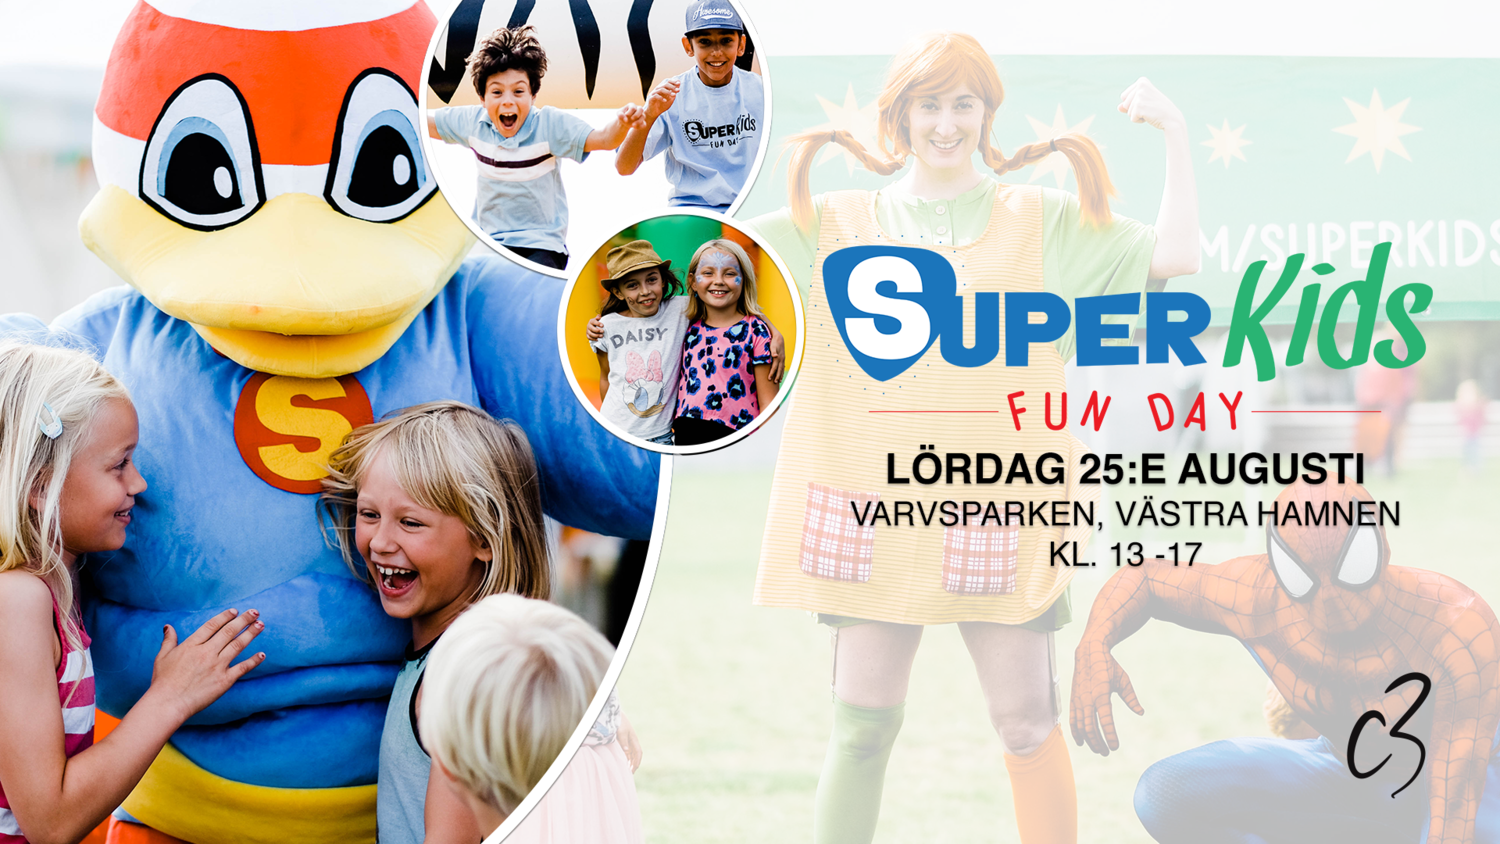 Super Kids Funday — C3 Church Malmö